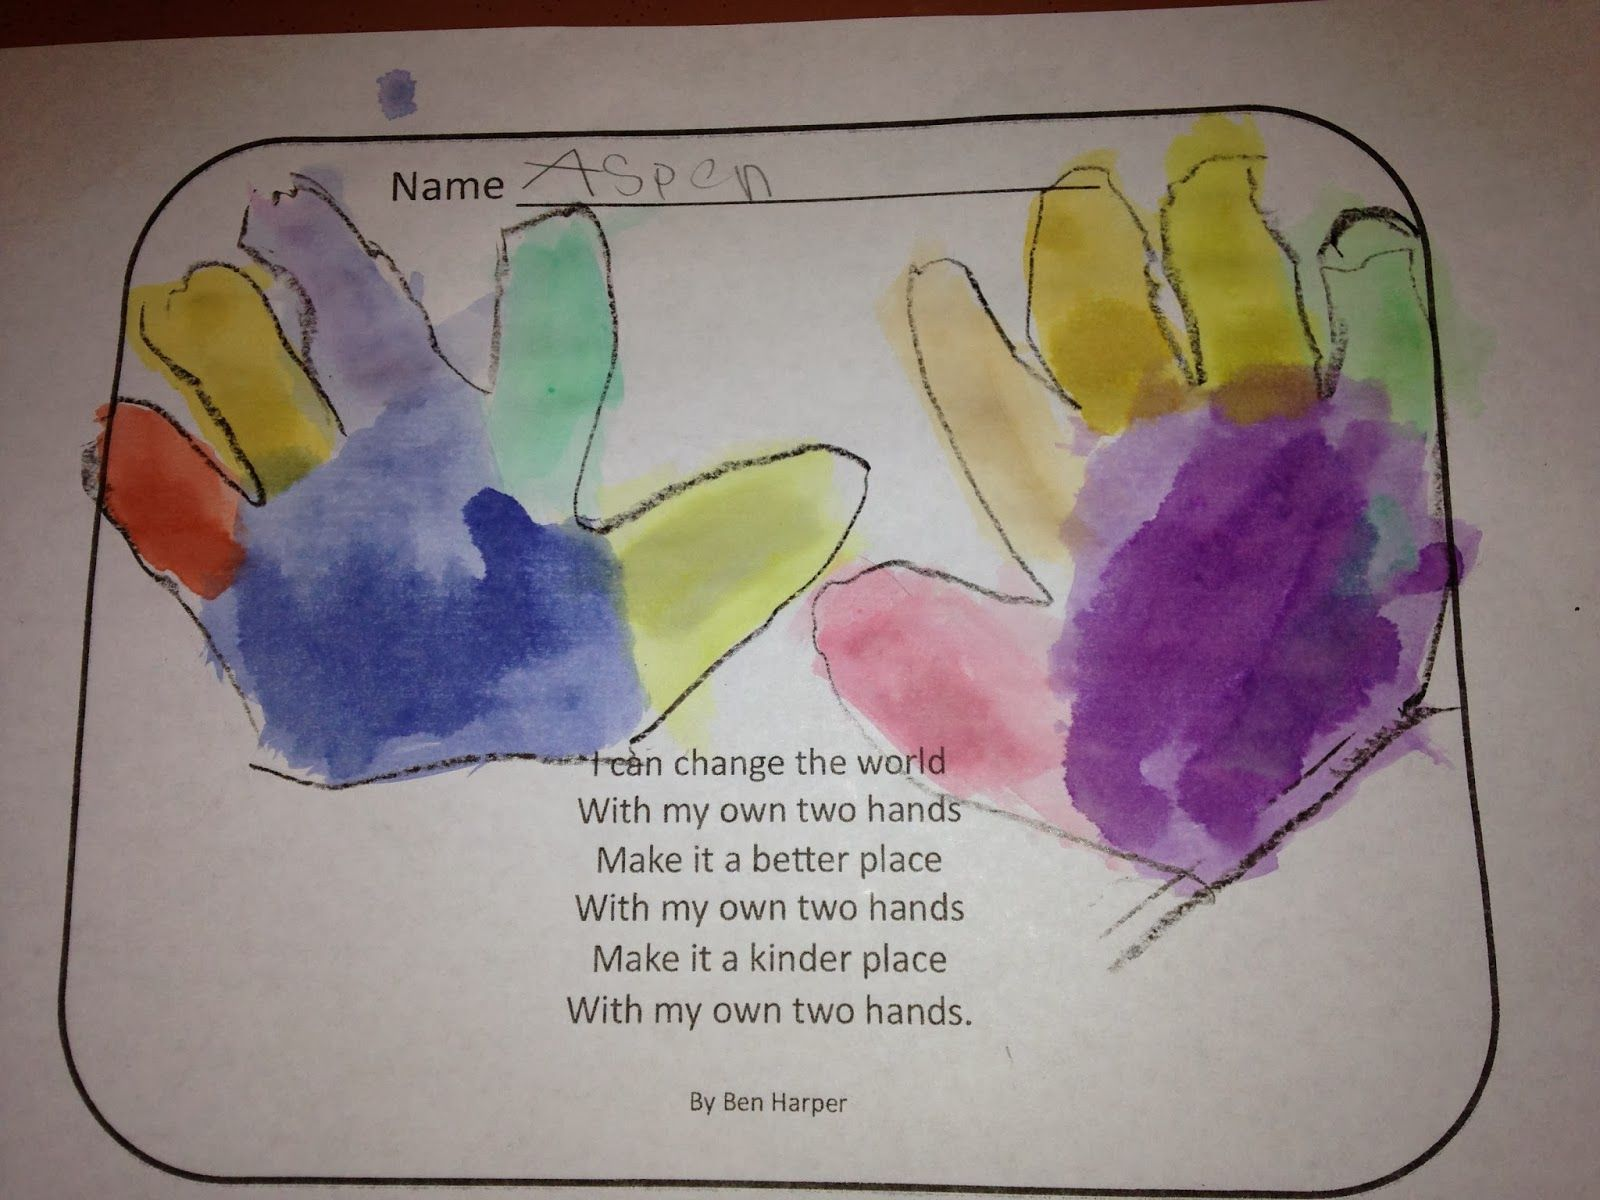 The Kindergarten Teacher With My Own Two Hands For Mlk